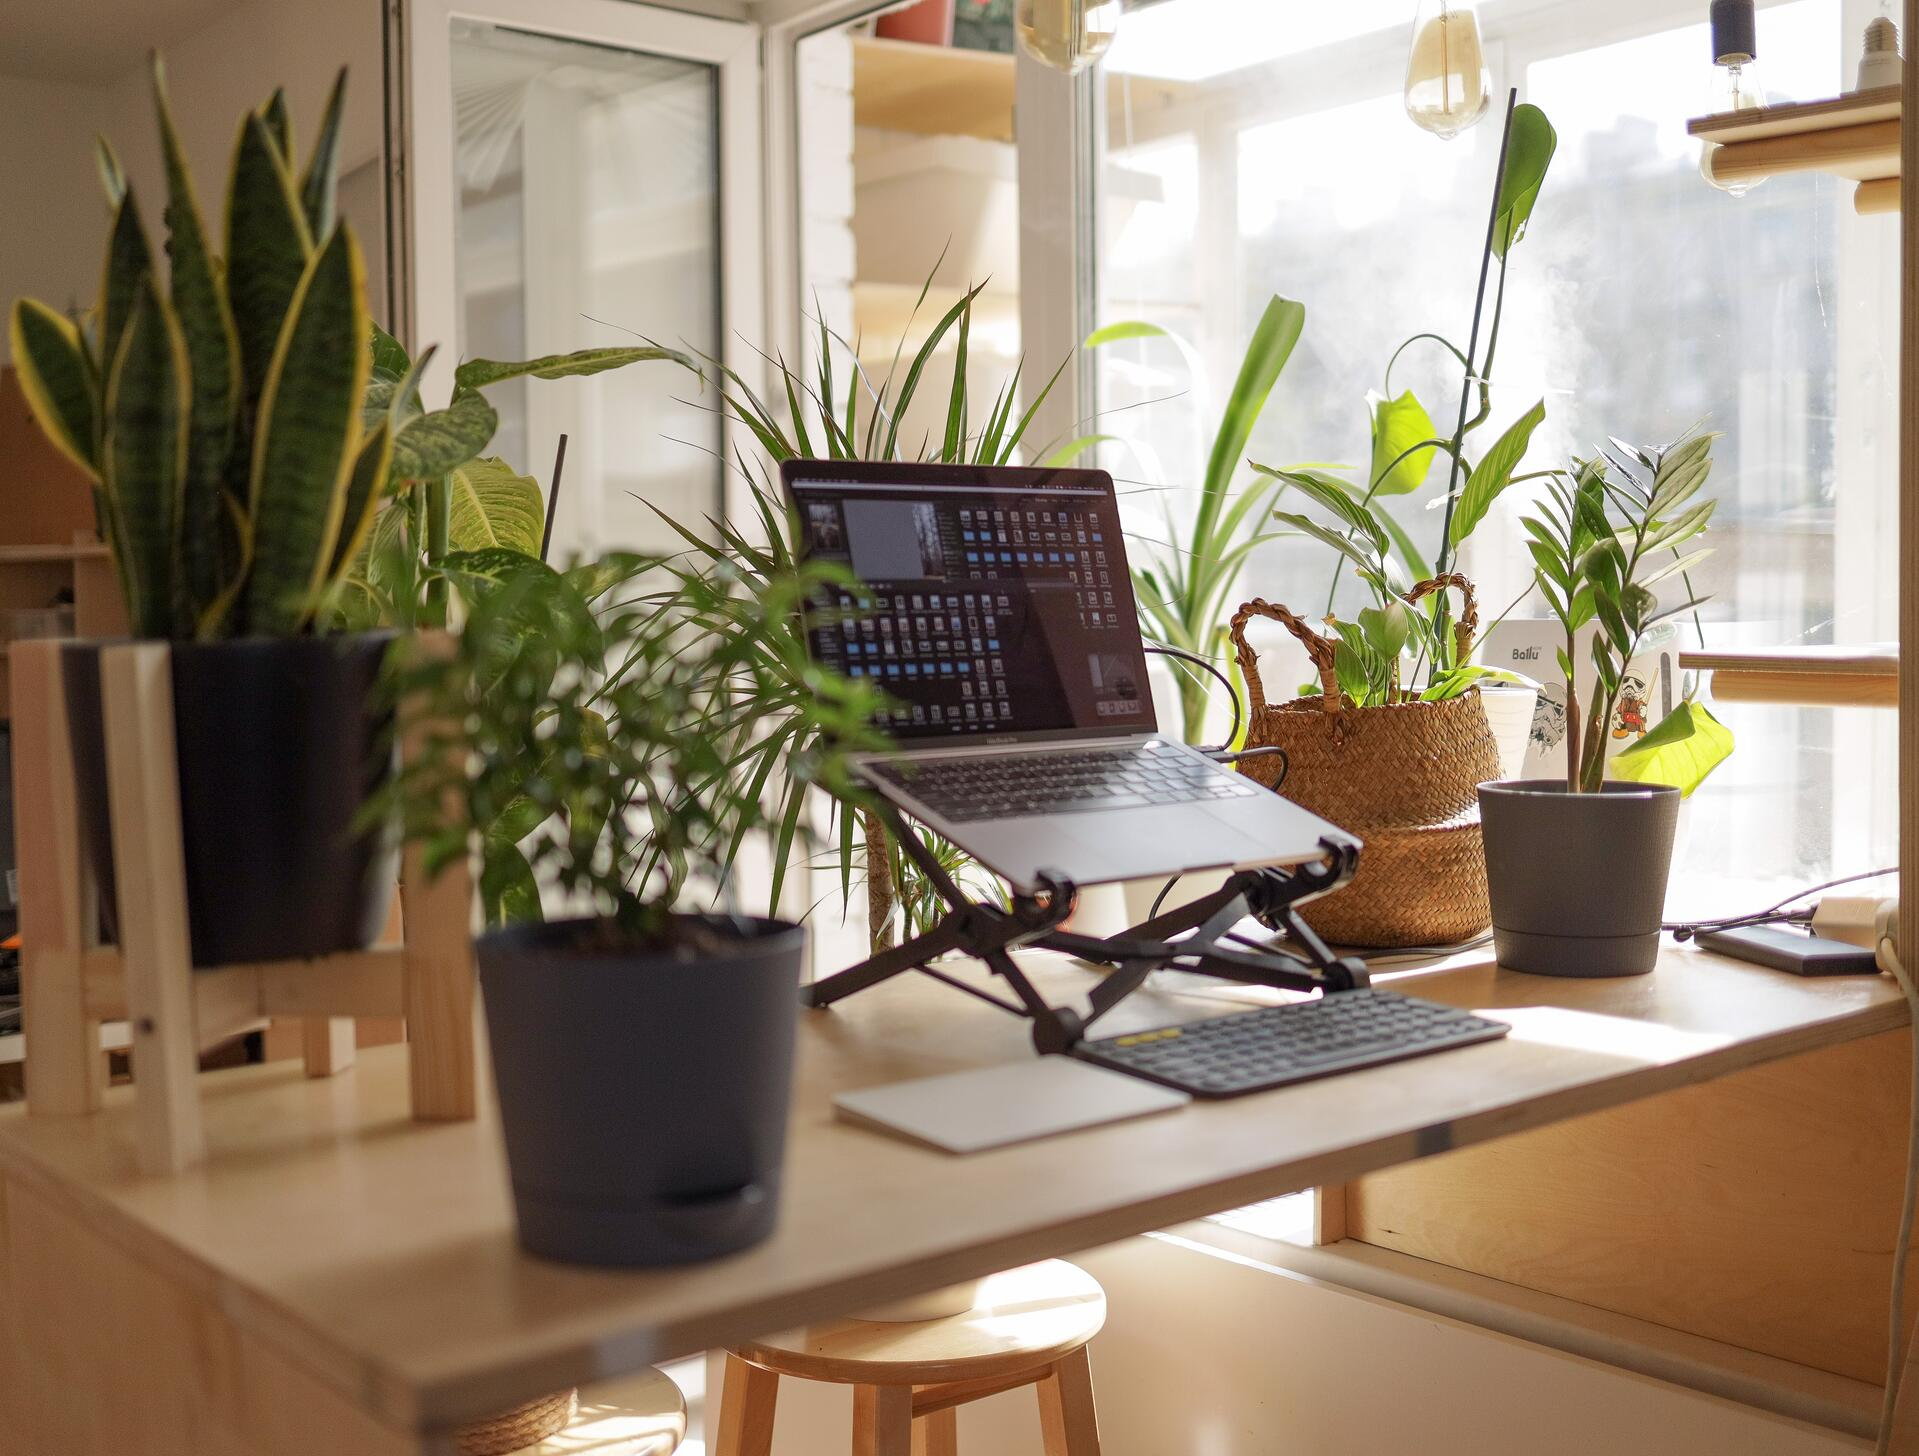 Remote working computer surrounded by plants